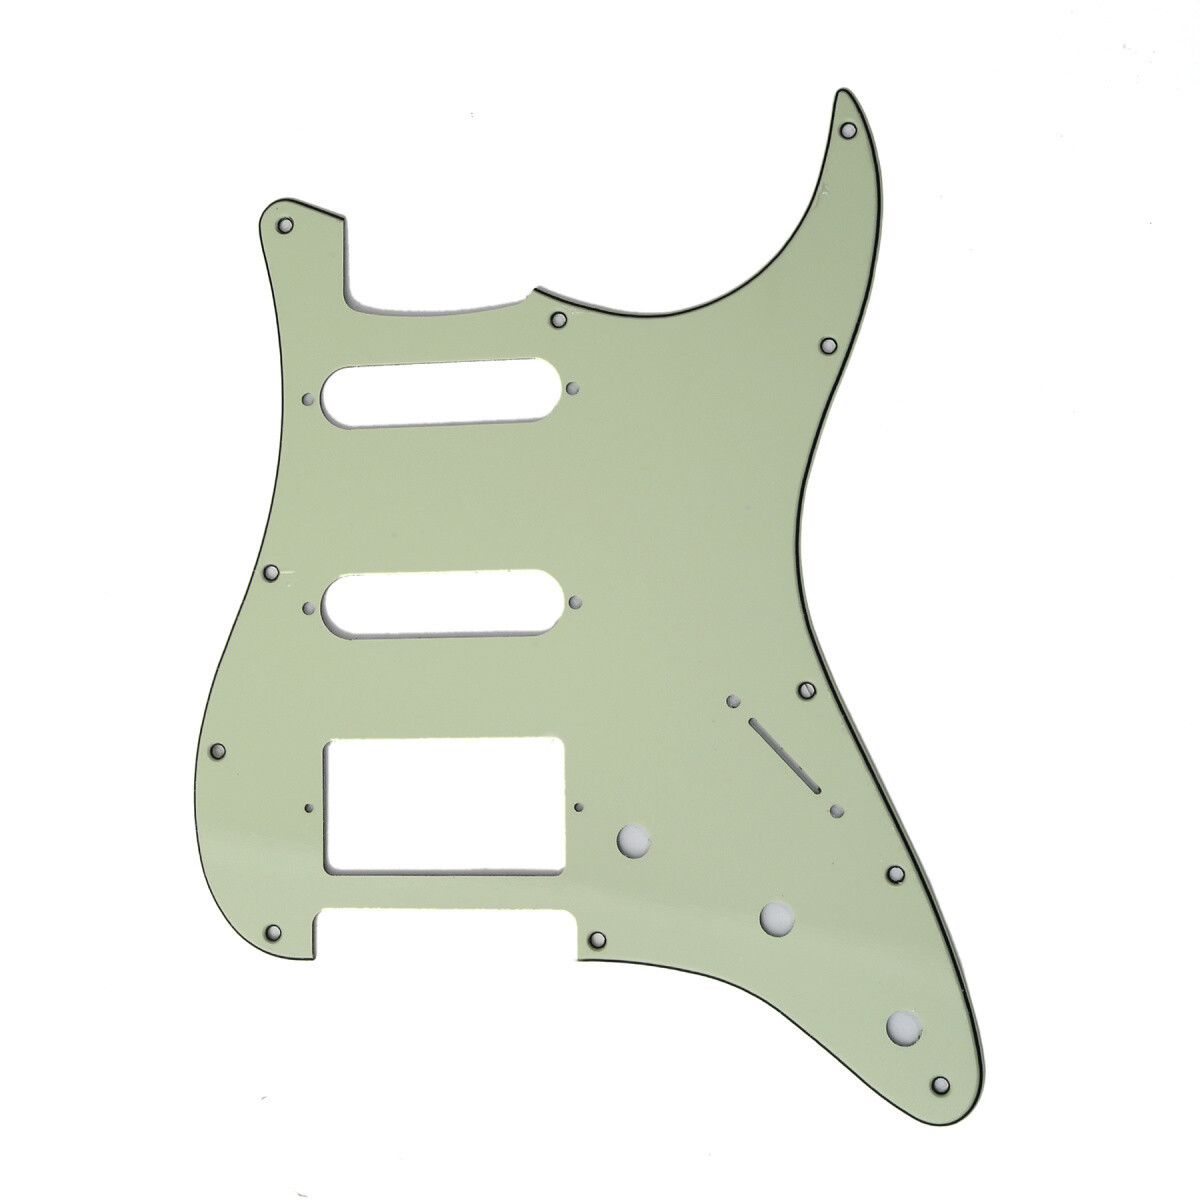 Brio 11 Hole HSS Strat® Pickguard for Fender US/Mex Made Standard Stratocaster Modern Style 3 Ply Mint Green